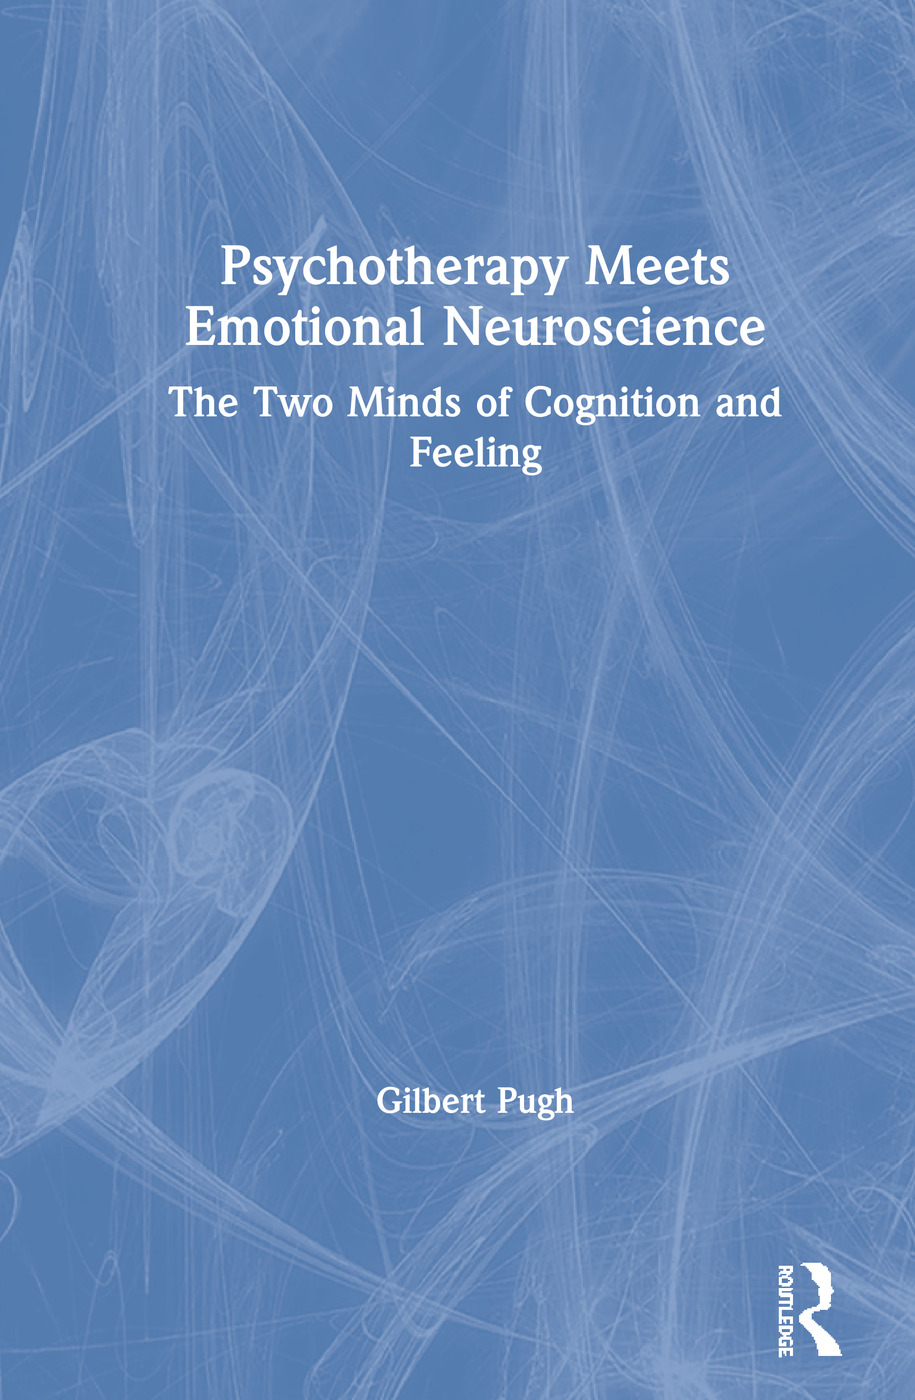 Psychotherapy Meets Emotional Neuroscience: The Two Minds of Cognition and Feeling book cover